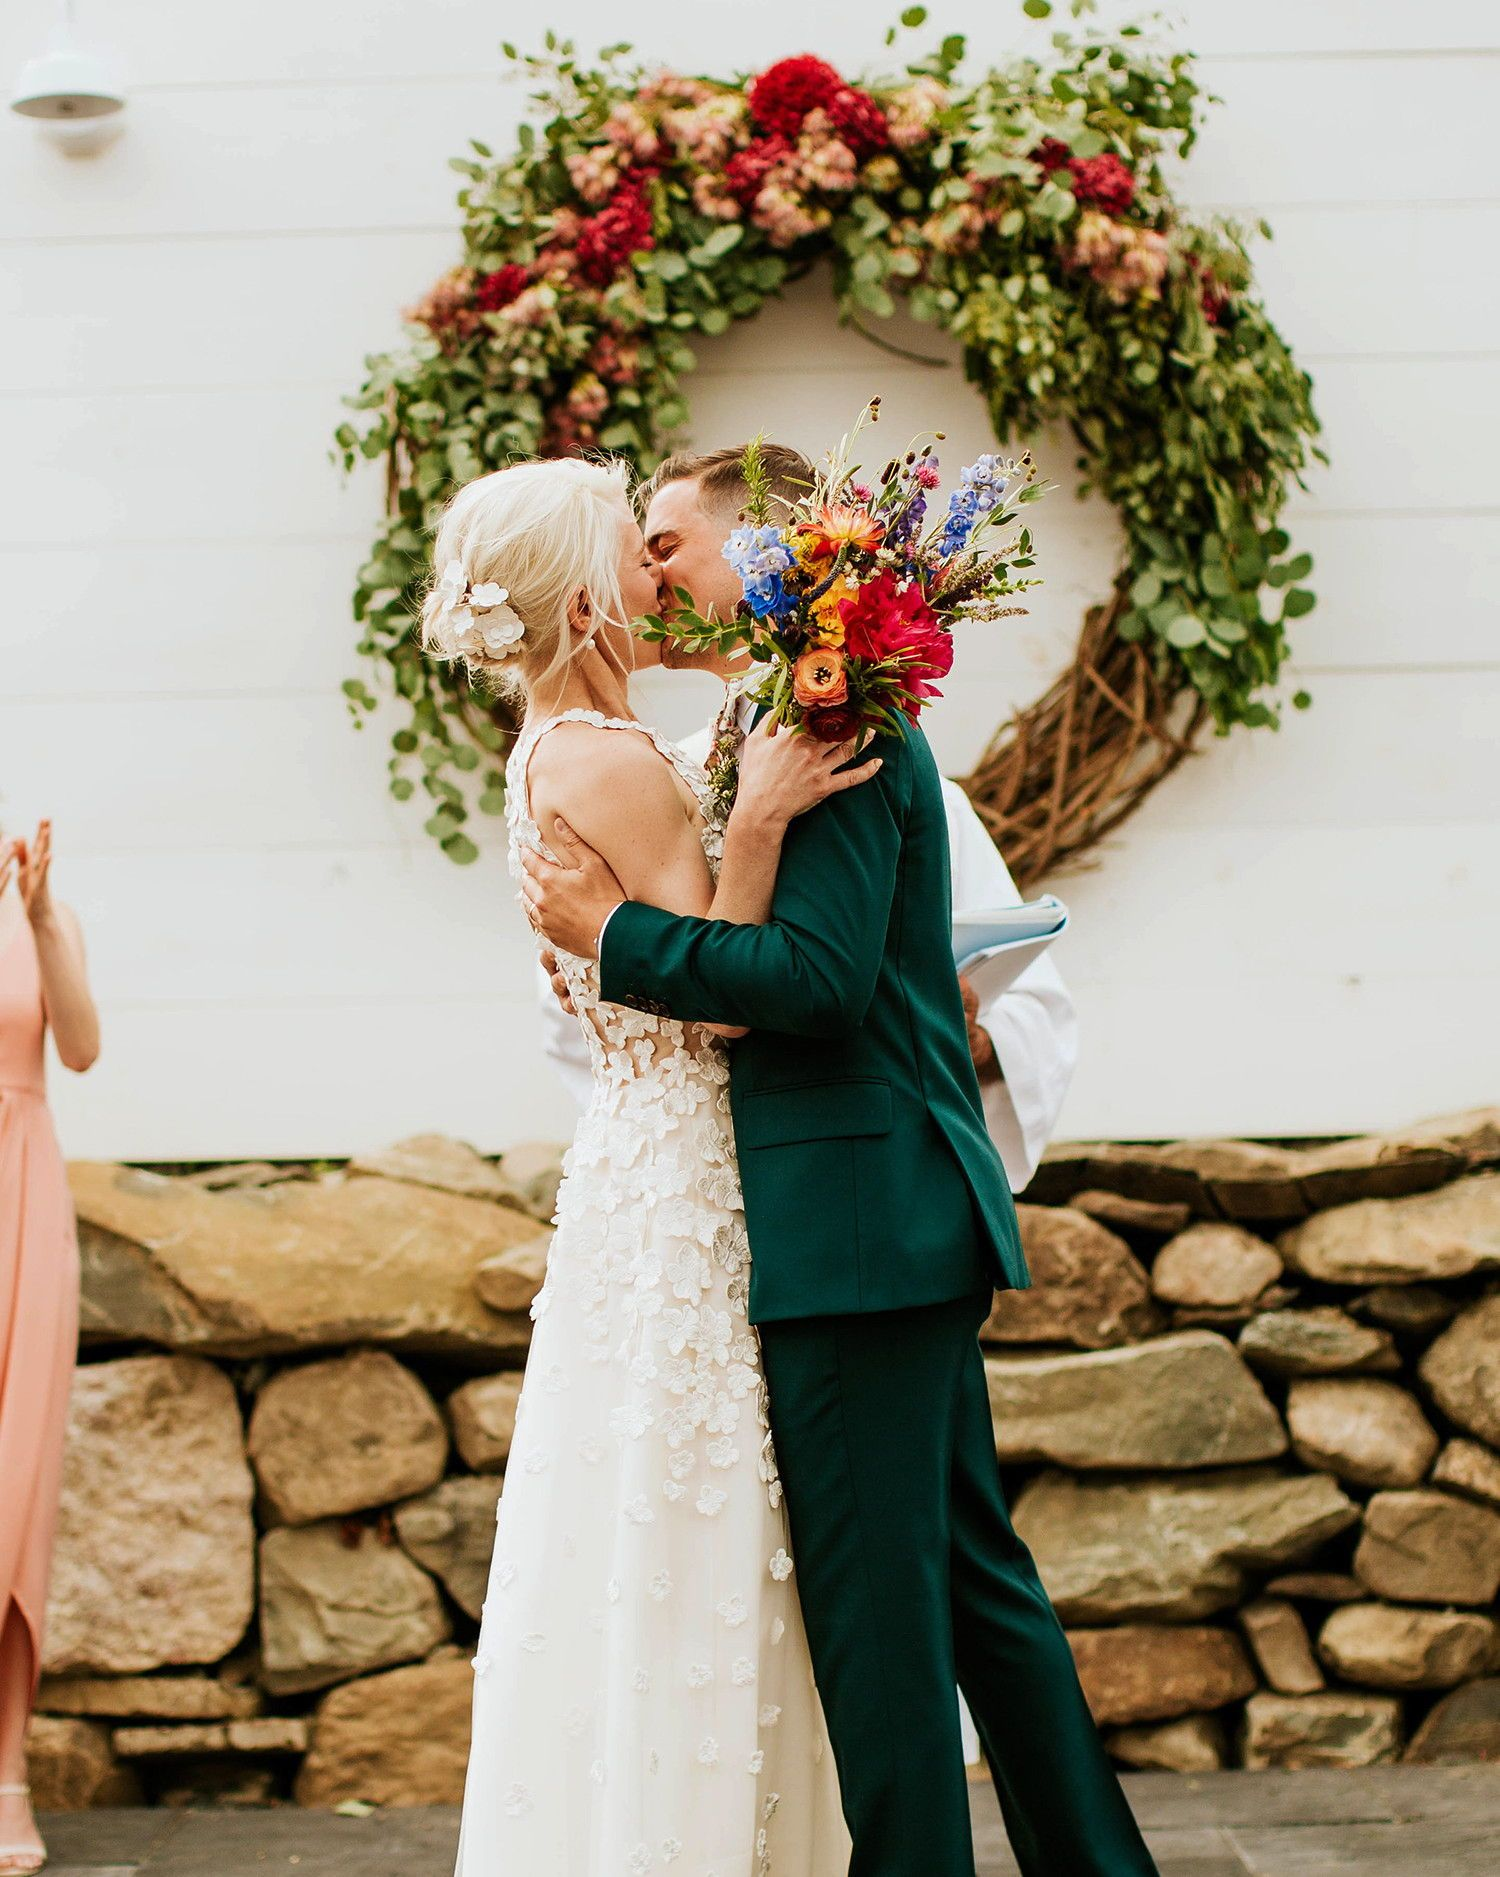 A Handmade And All Hands On Deck Wedding In Upstate New York